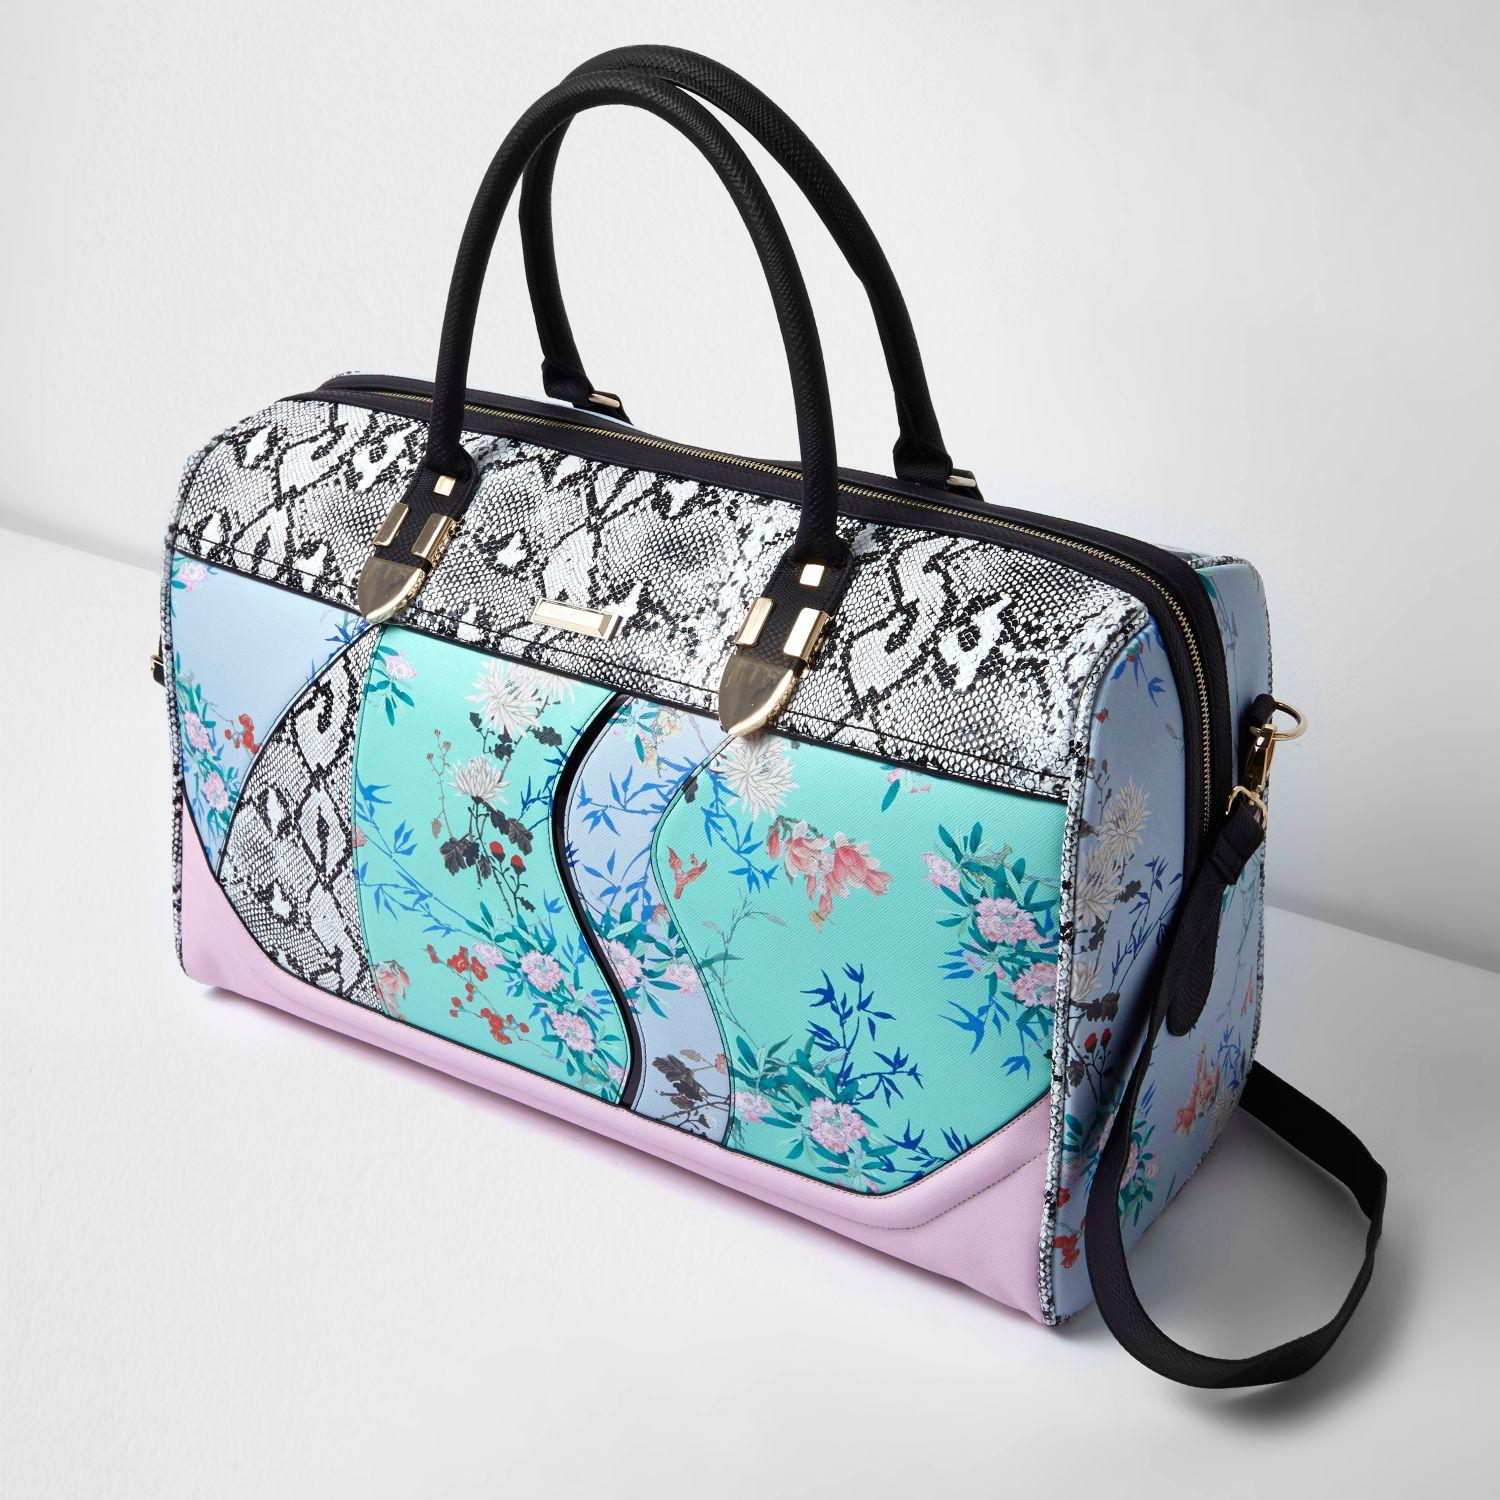 Lyst - River Island Blue Floral And Snake Print Weekend Bag In Blue